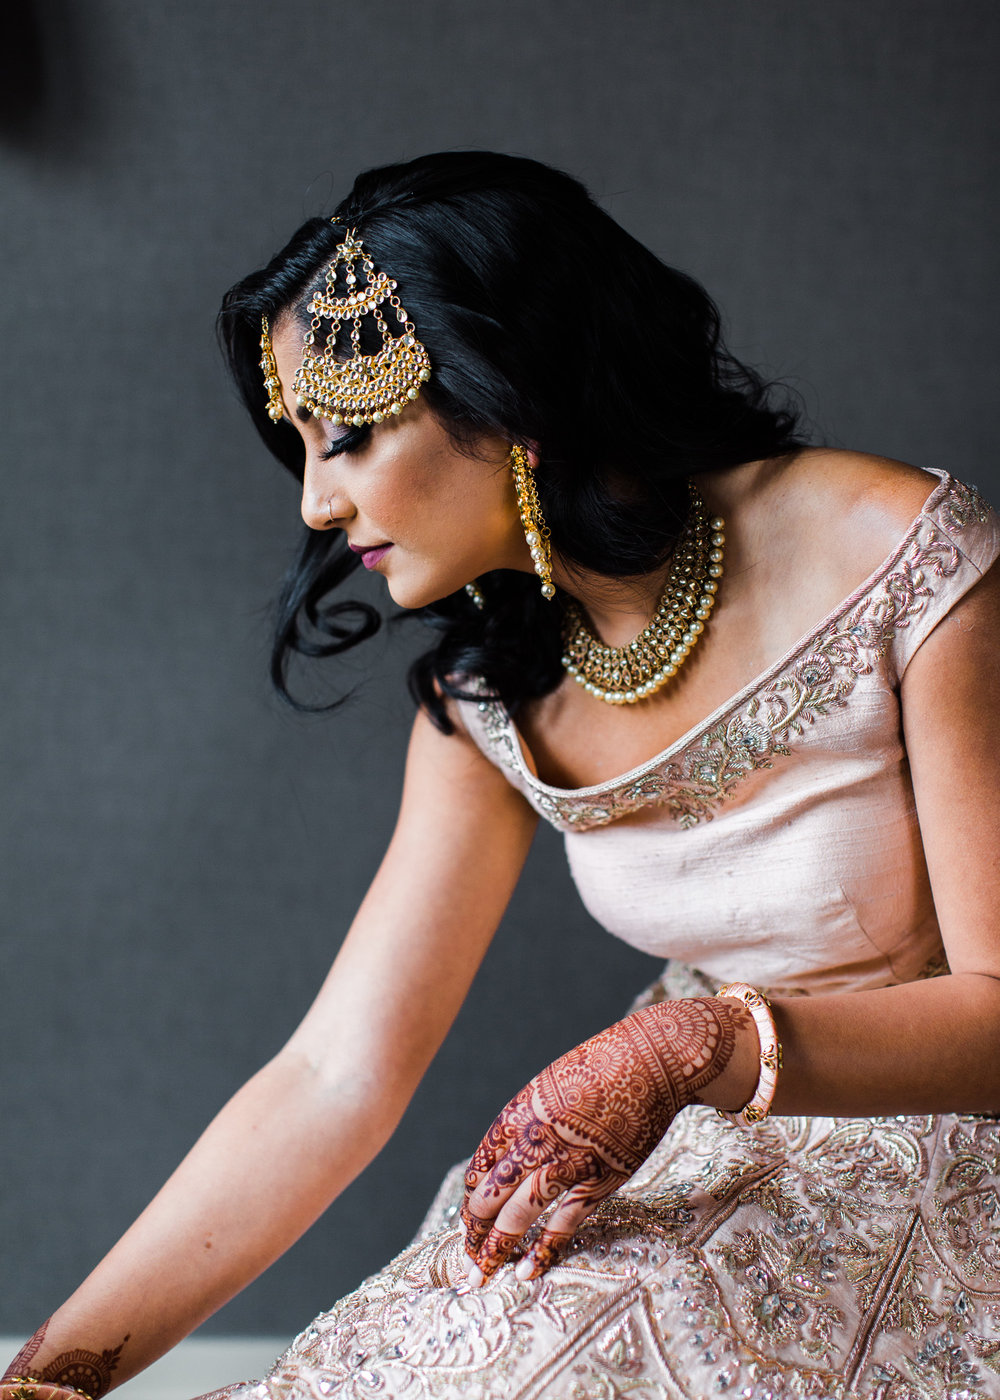 Alexandra Knight Photography Seattle Indian Wedding Photographer bride getting dressed blush pink lehenga dress with gold jewelry and henna.jpg